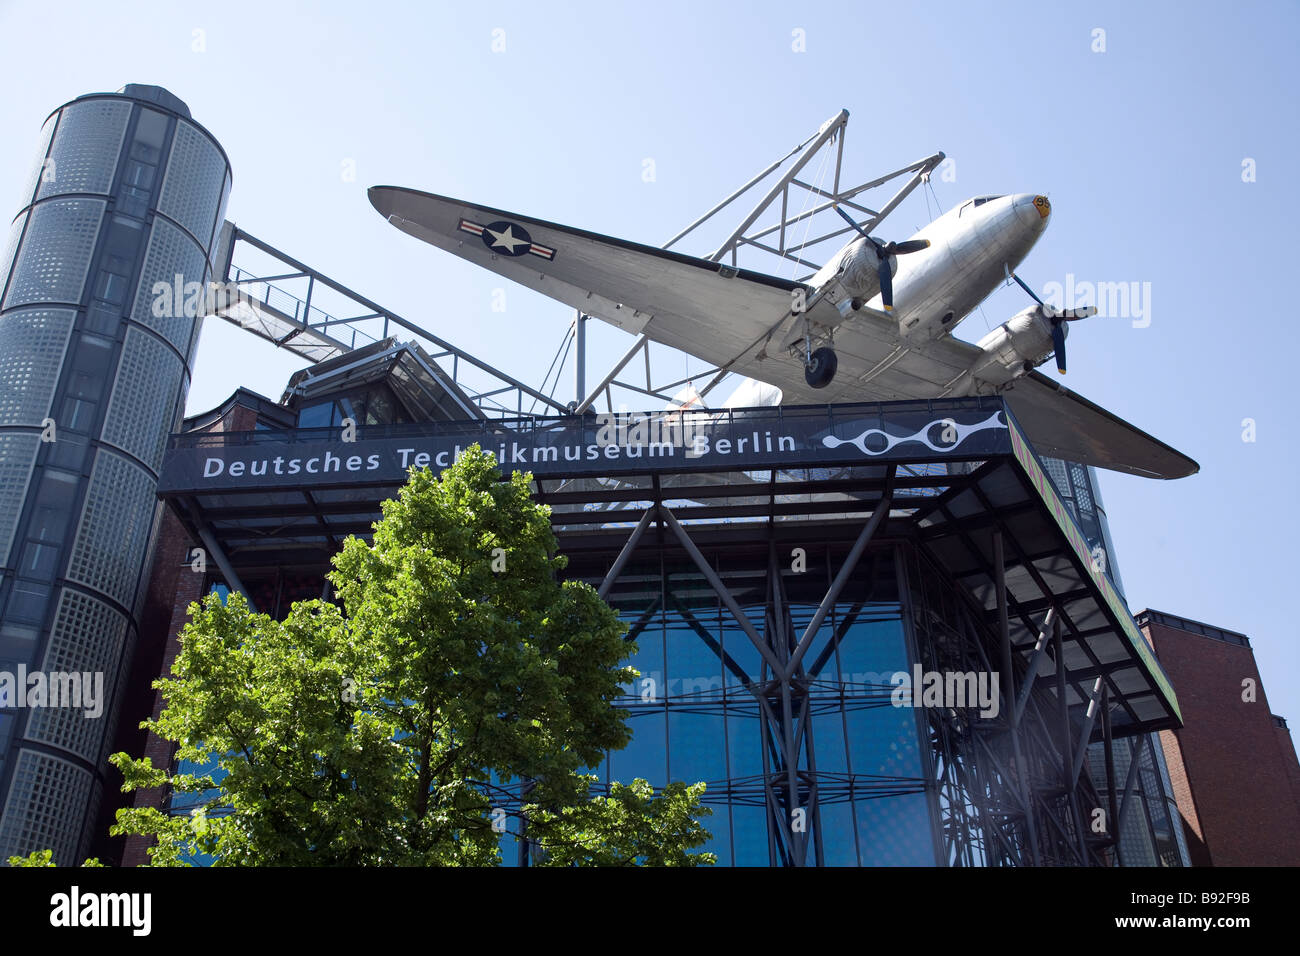 A Douglas C 47 sits on the roof of the Deutsches Technikmuseum in Berlin Germany - Stock Image